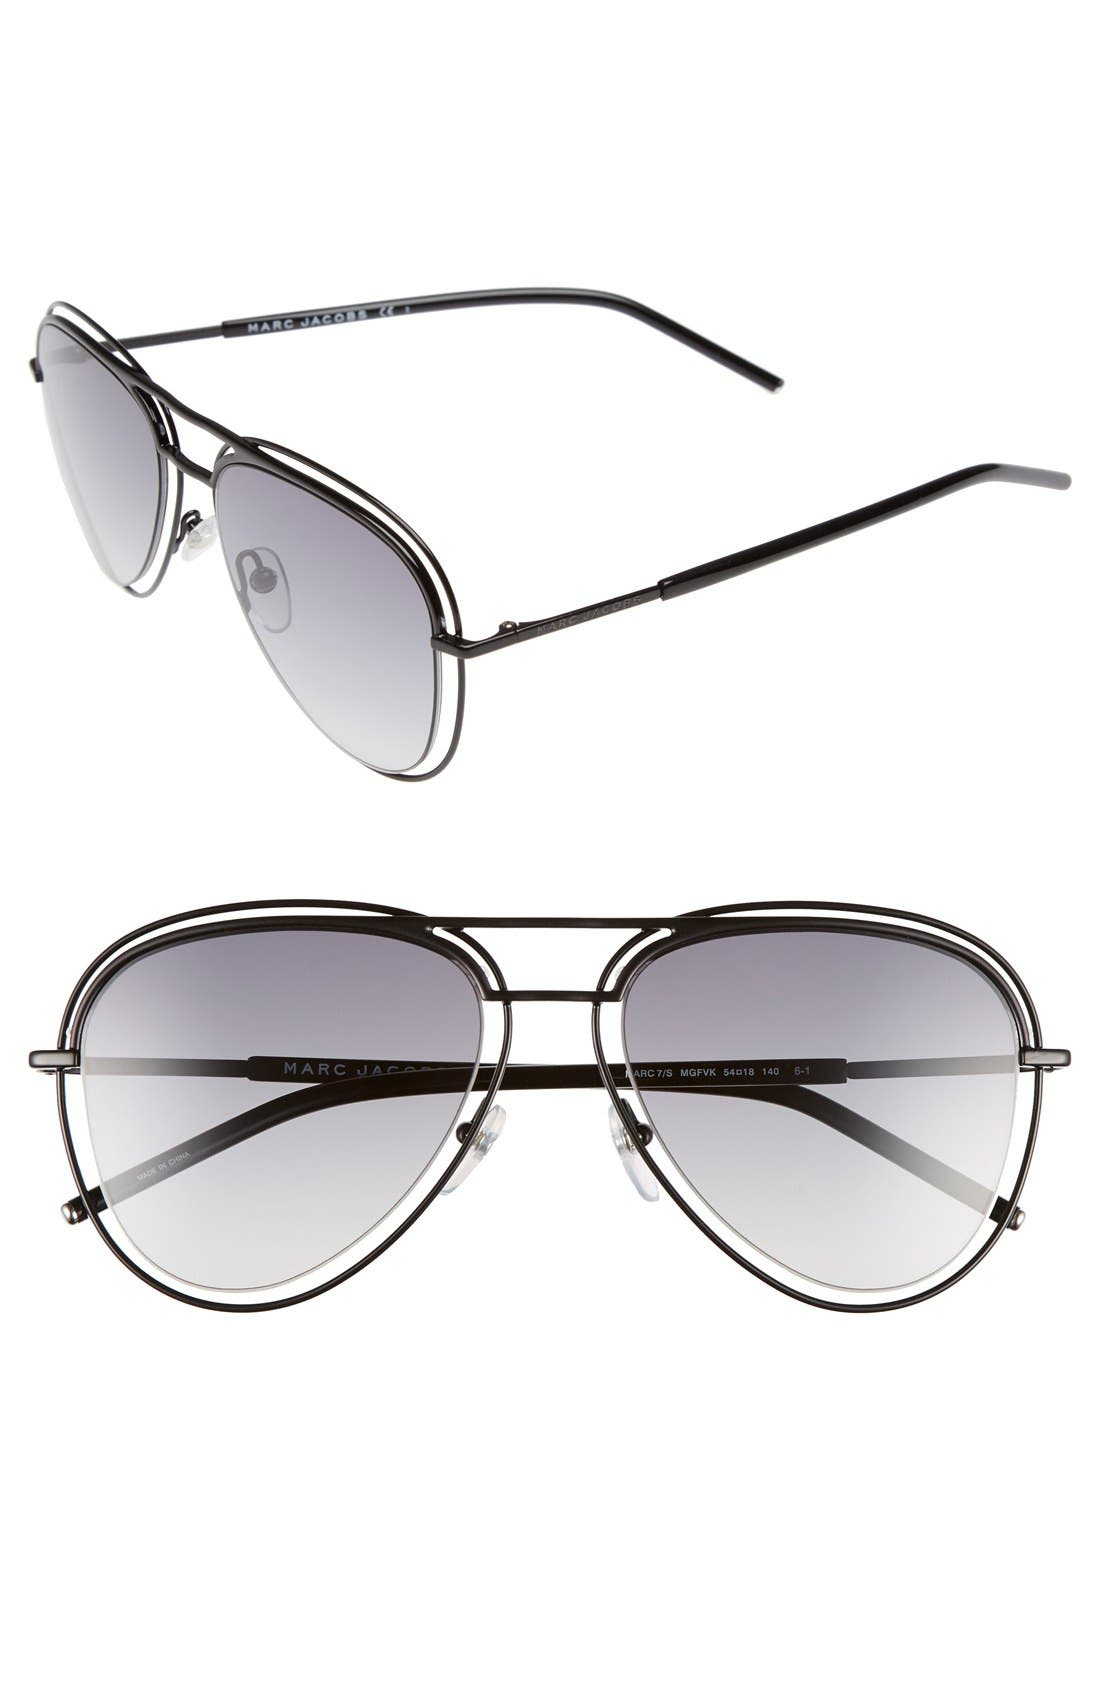 Alternate Image 1 Selected - MARC JACOBS 54mm Aviator Sunglasses